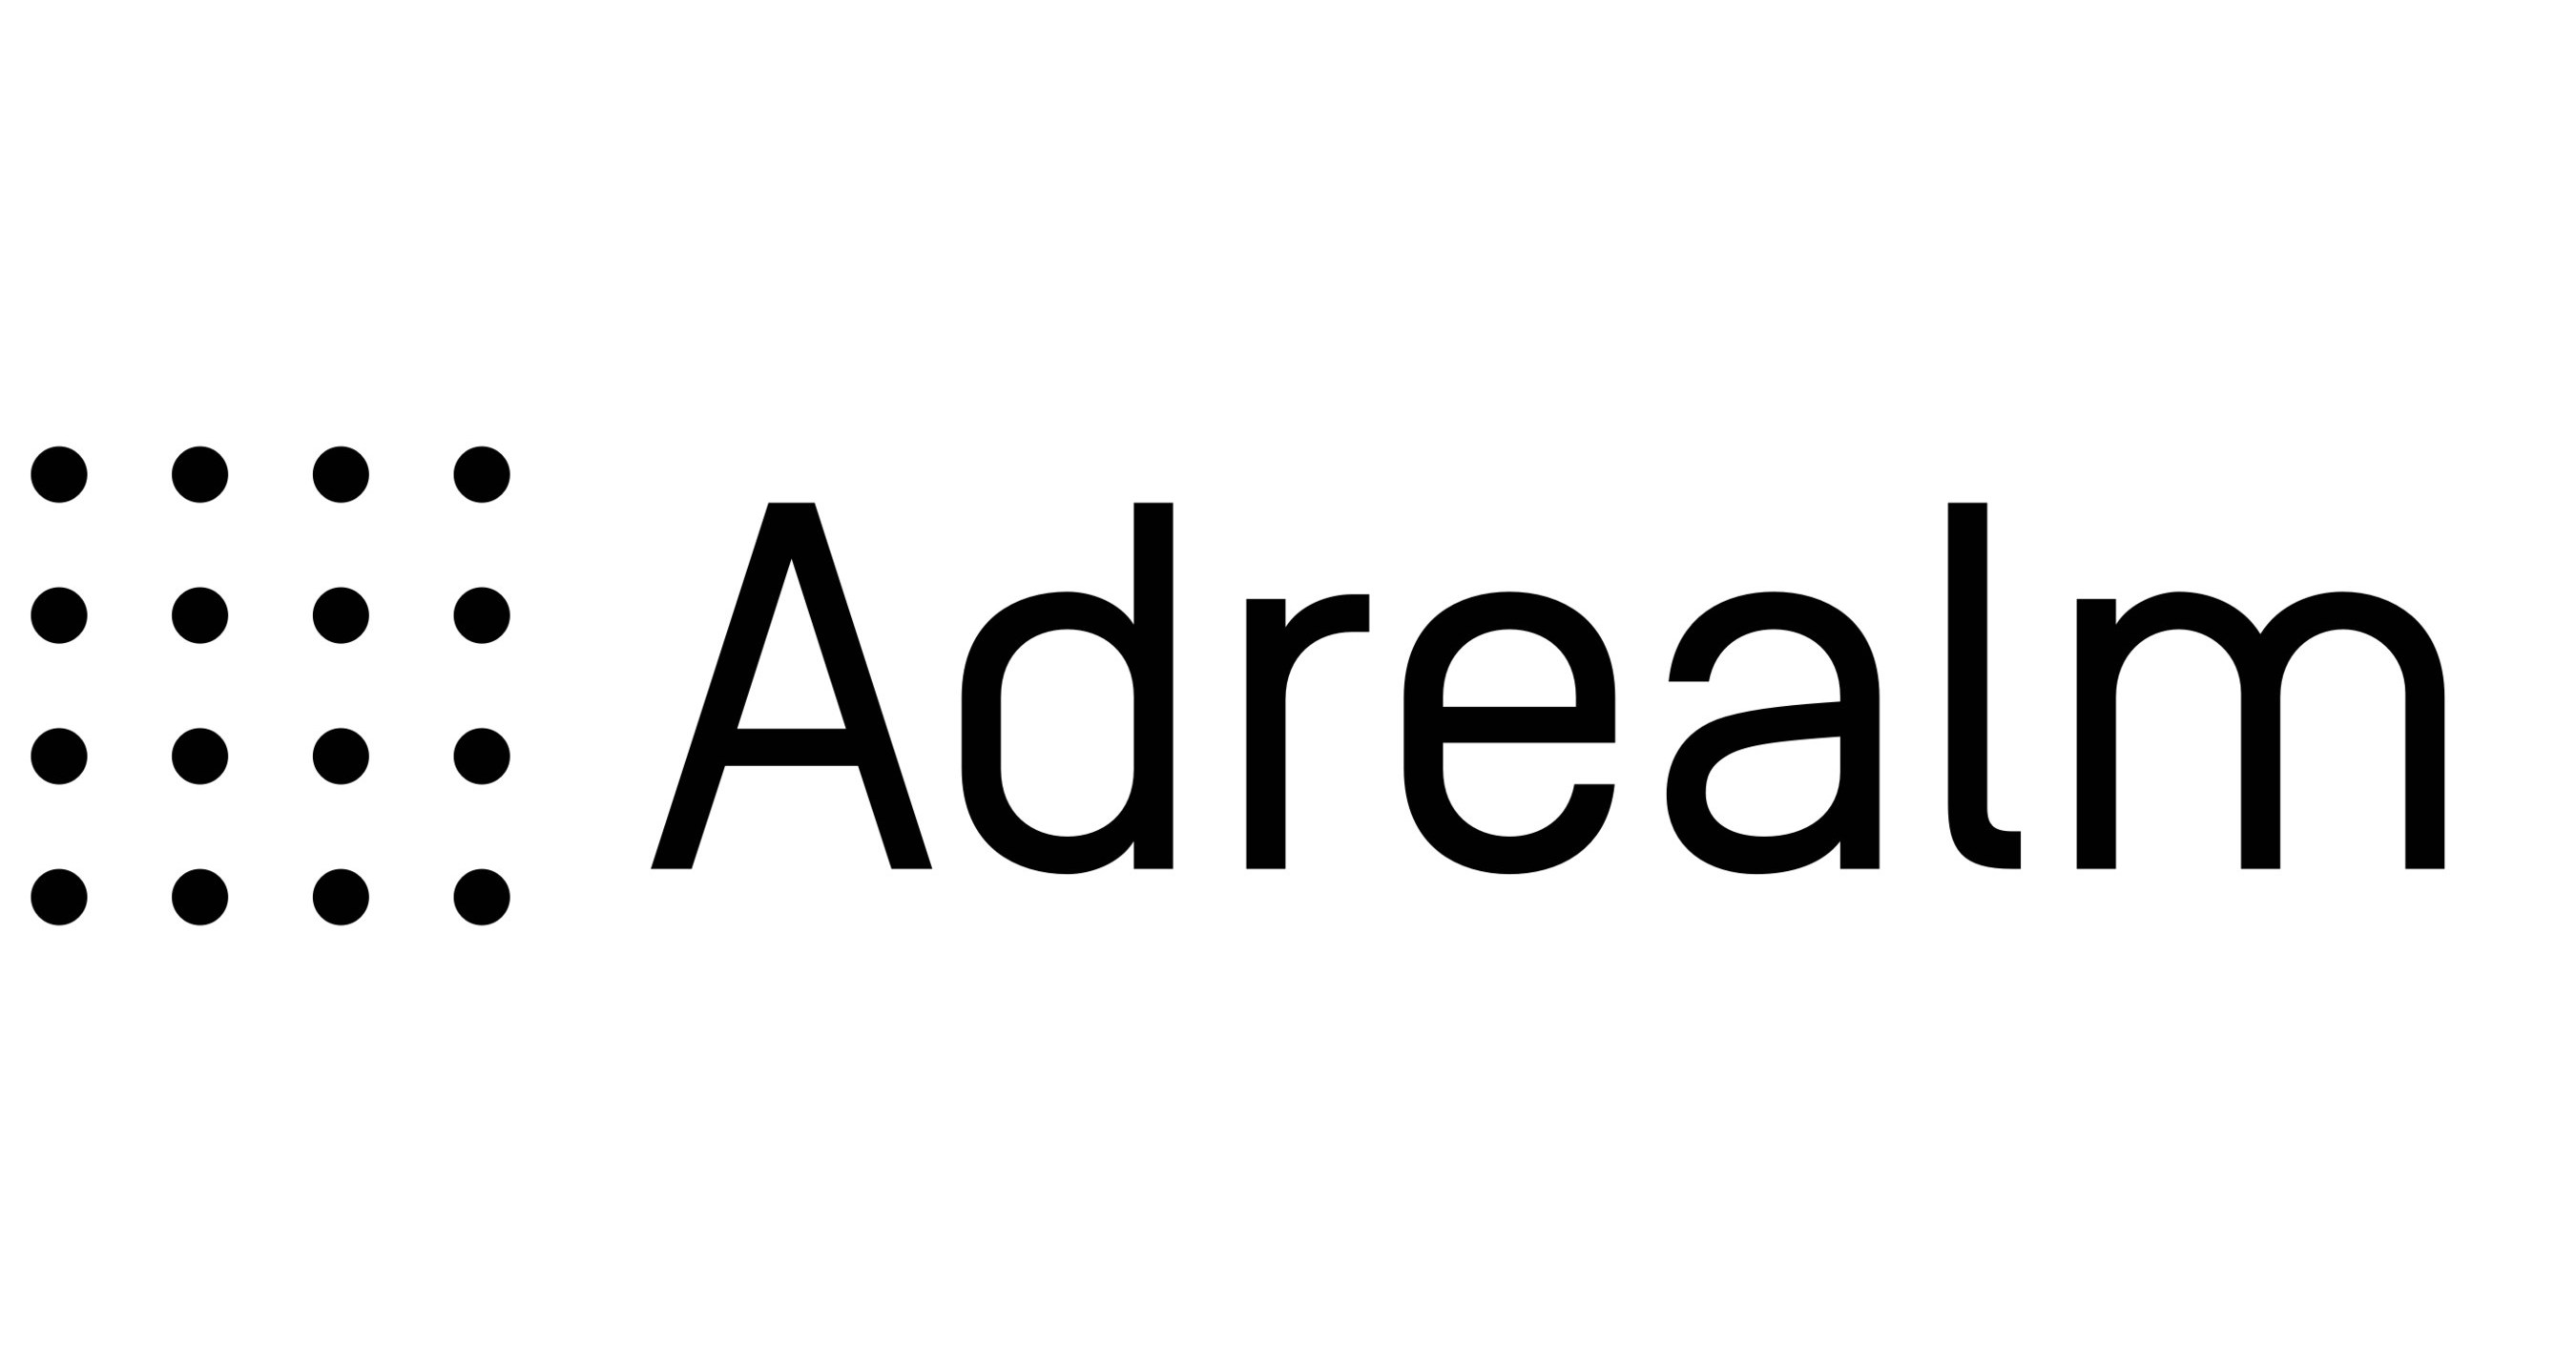 Adrealm Foundation joined by NYU, Carnegie Mellon scholars